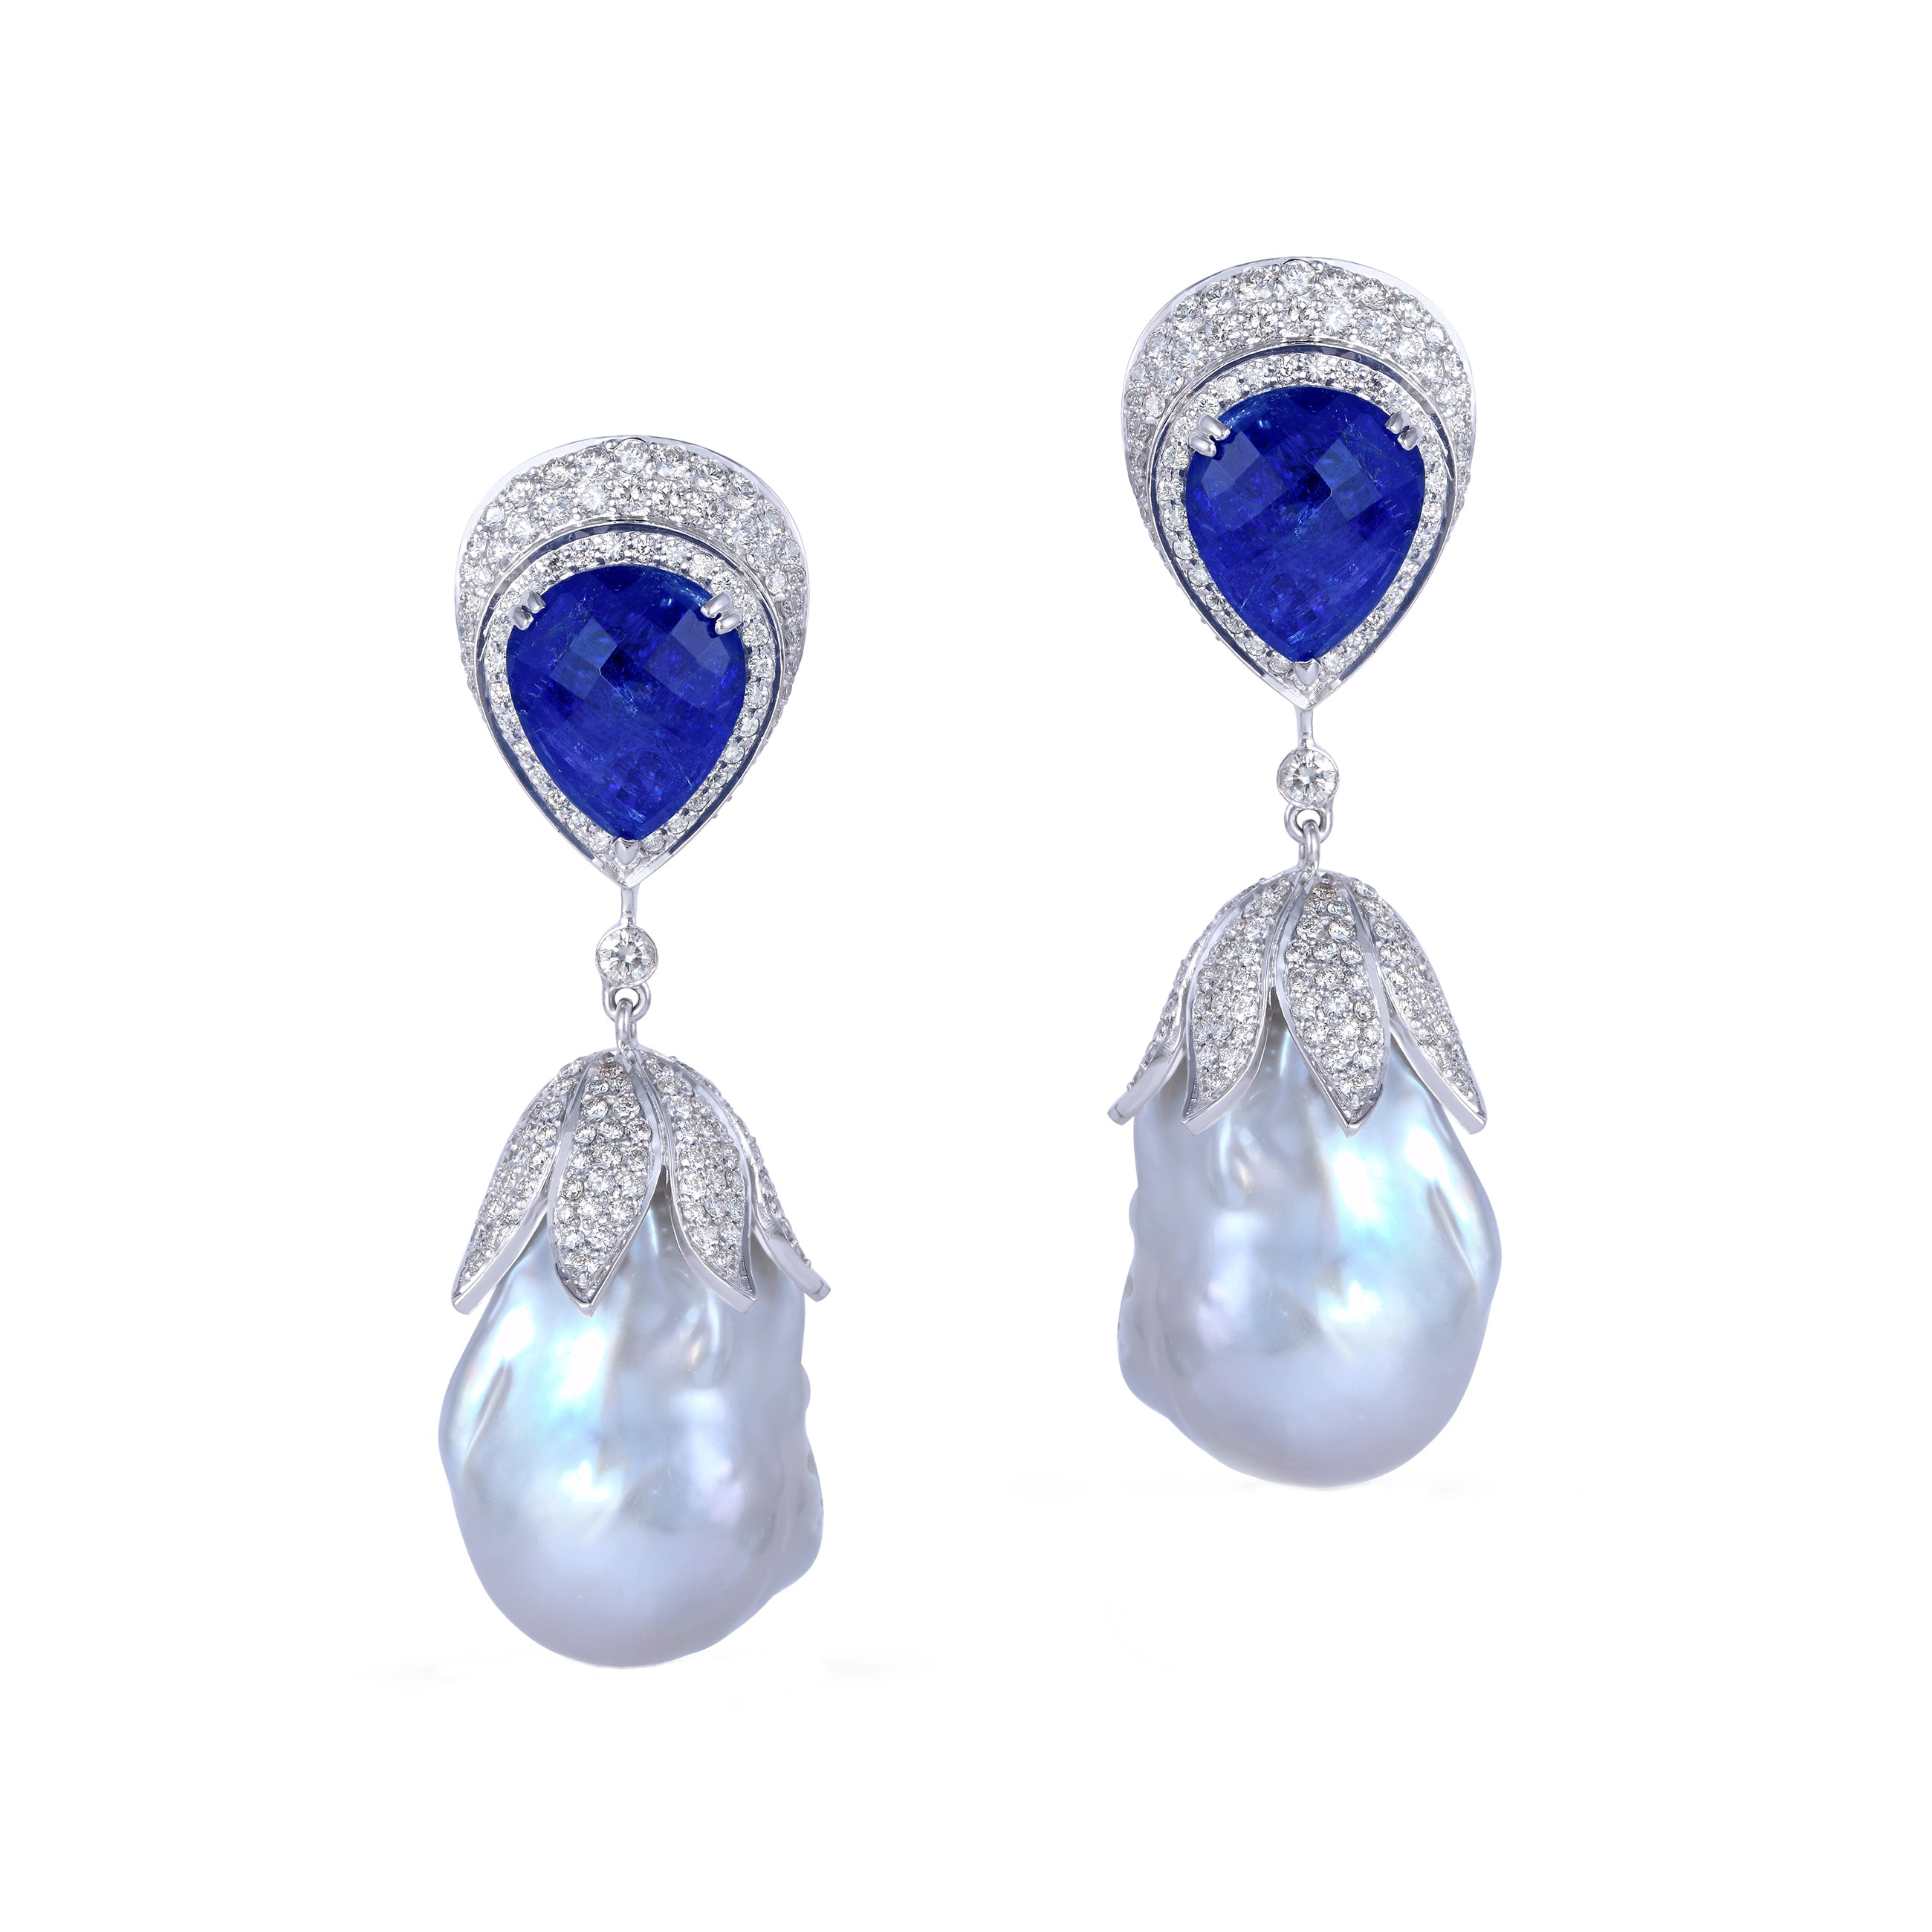 Baroque Pearl, Tanzanite and Diamond Earrings